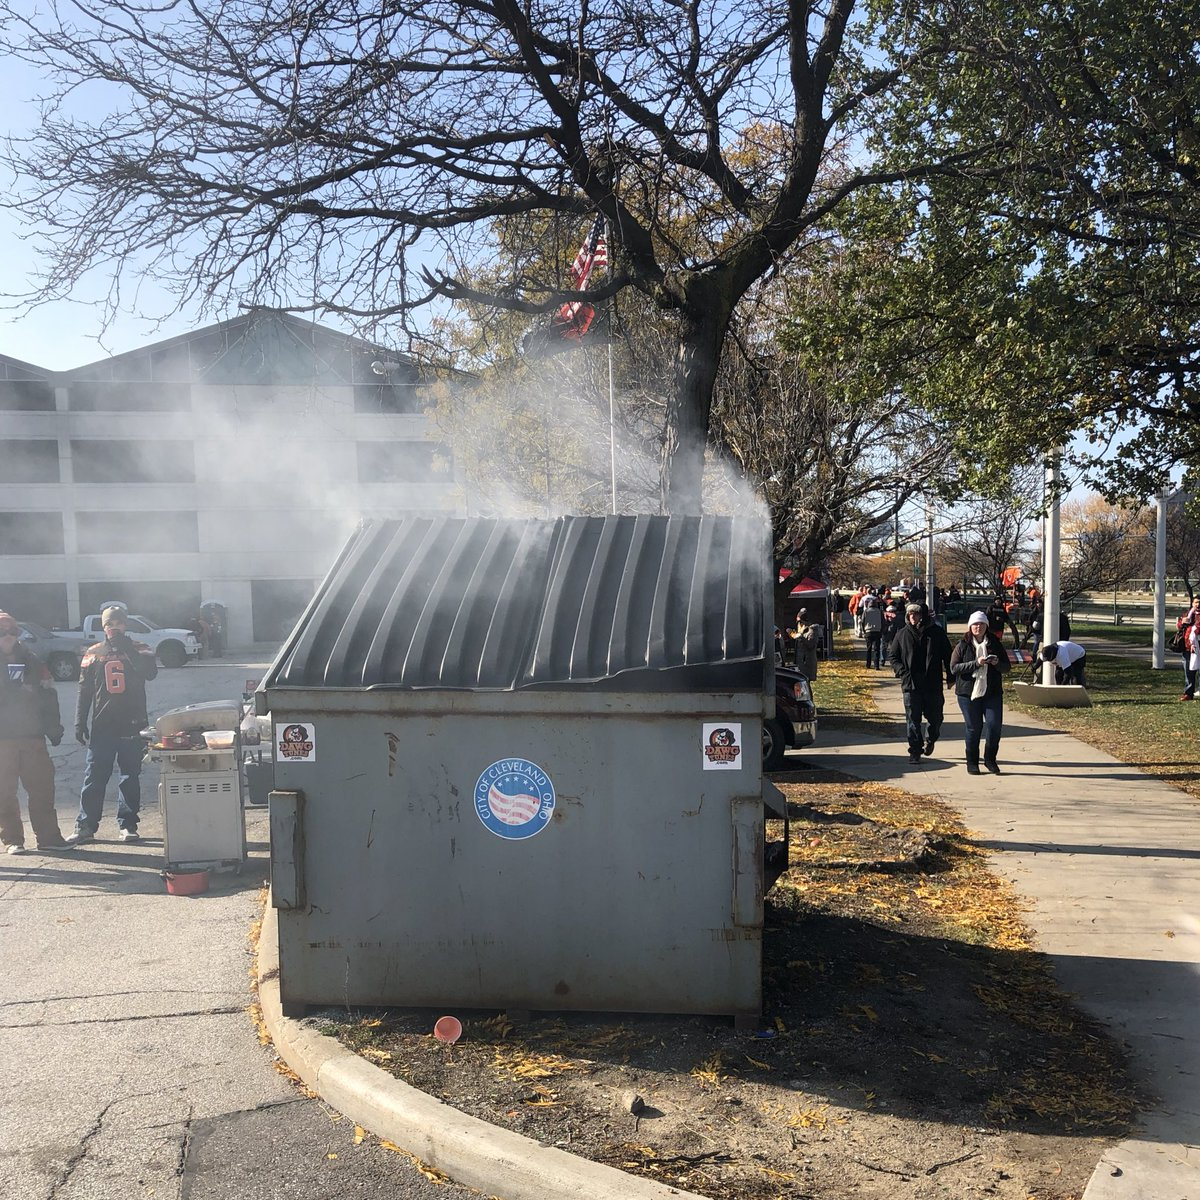 There is a literal dumpster fire in the Muni Lot today. Only in Cleveland. #Browns https://t.co/bhgkdXOpU3